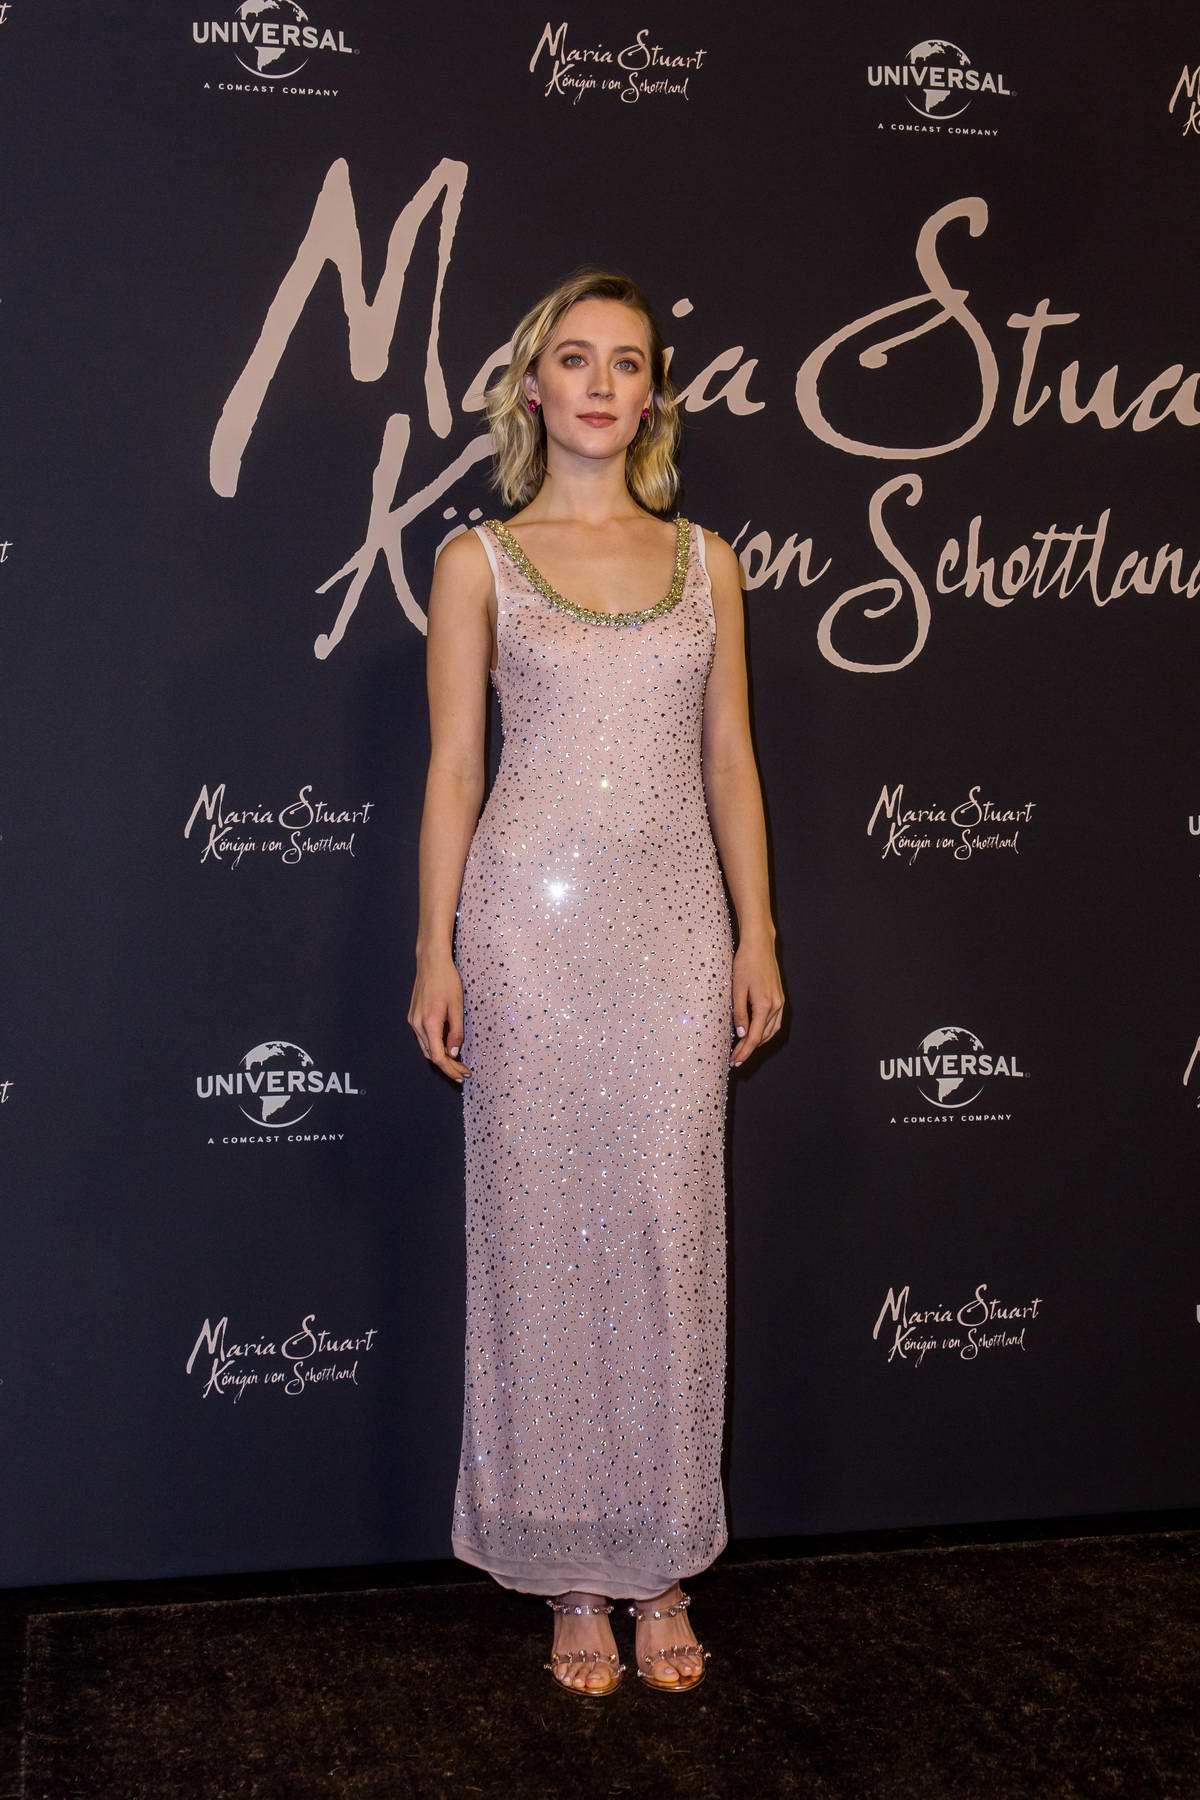 Saoirse Ronan attends Maria Queen of Scotland photocall in Berlin, Germany